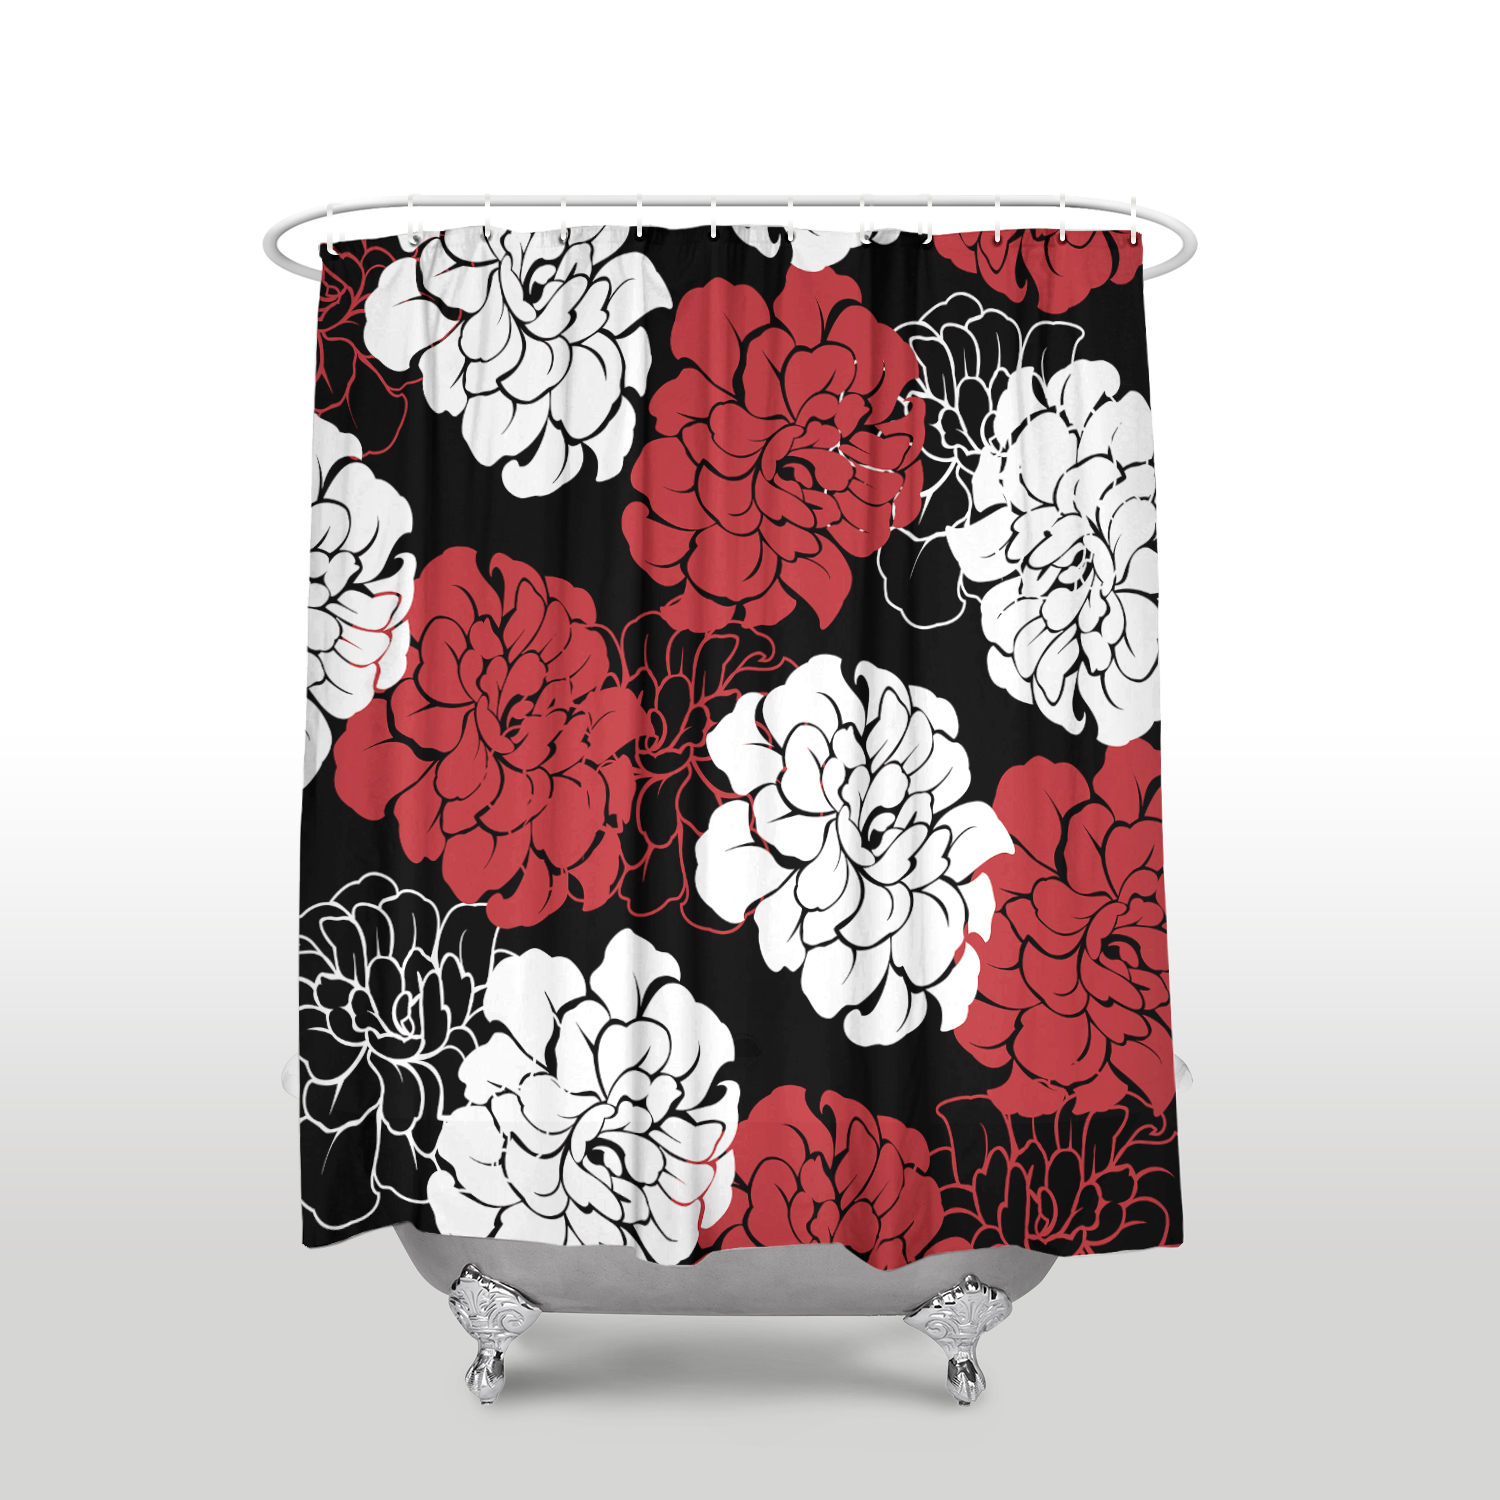 Peony Pattern Shower Curtain Waterproof Polyester Fabric Flower Bathroom Decor Printed Red Black White